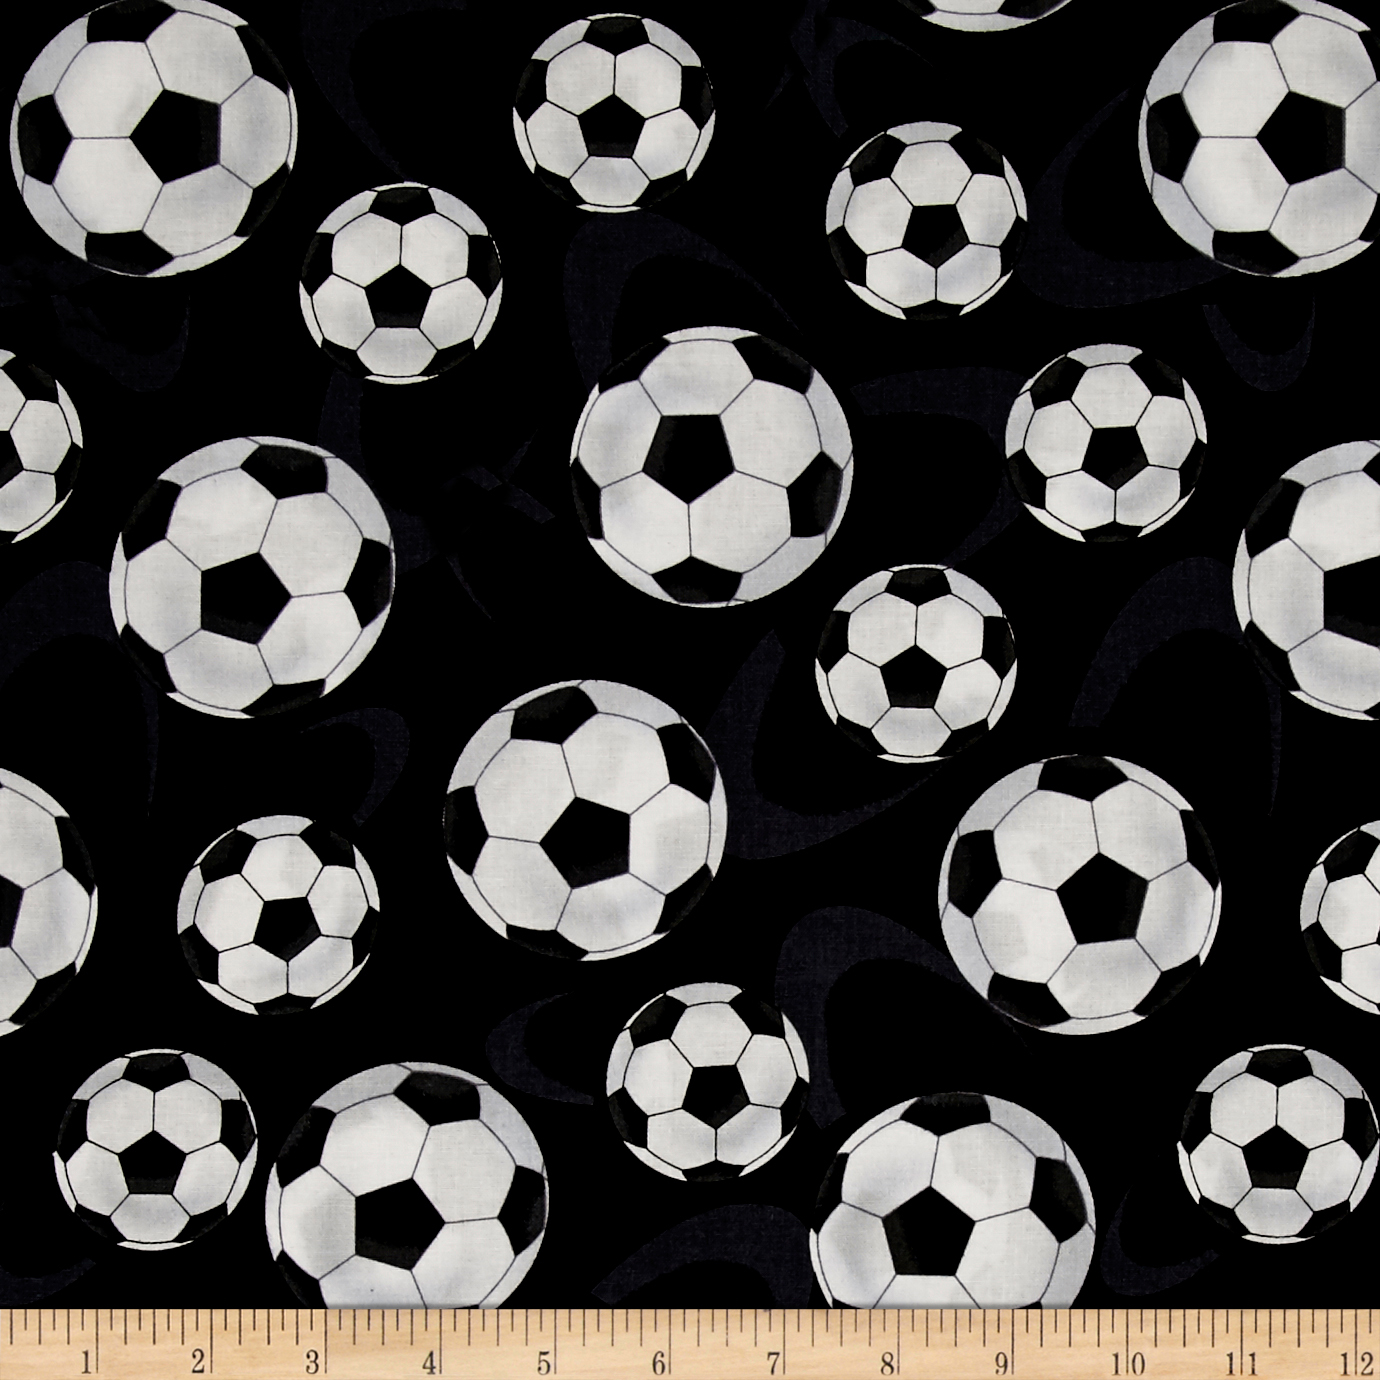 Score! Large Tossed Soccer Balls Black Fabric by Henry Glass in USA